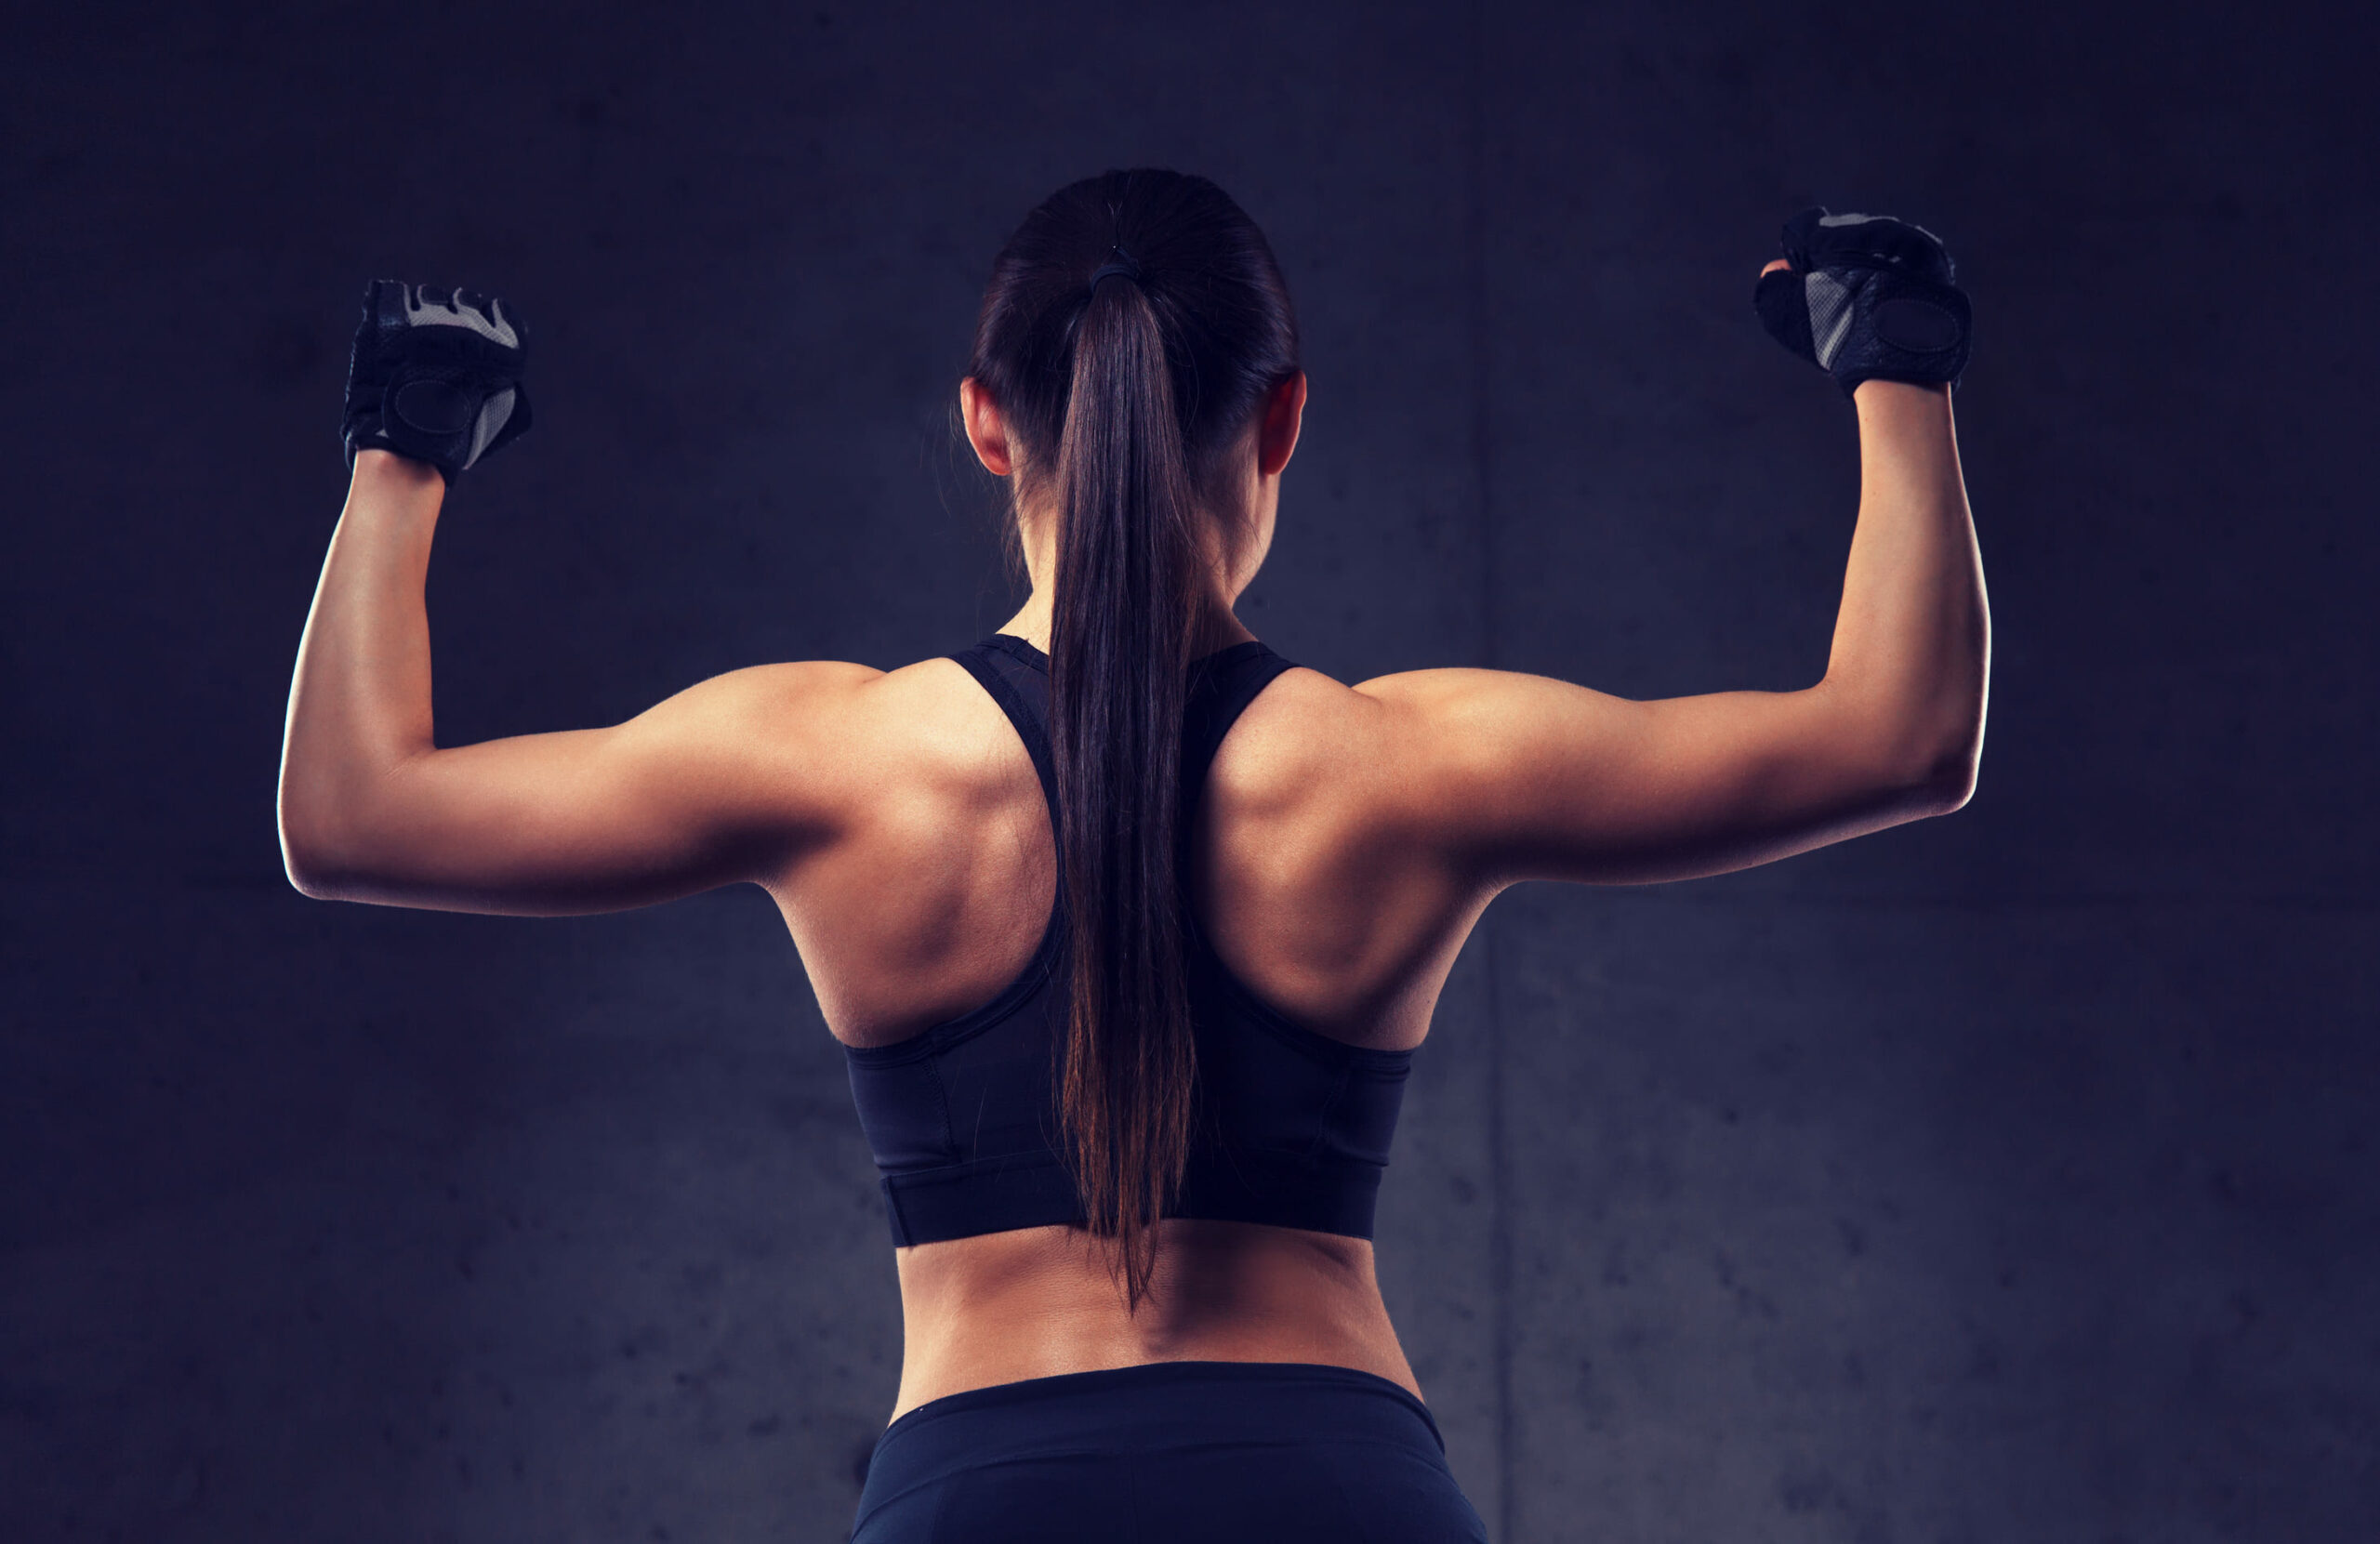 Muscle fibers and training – what you need to know